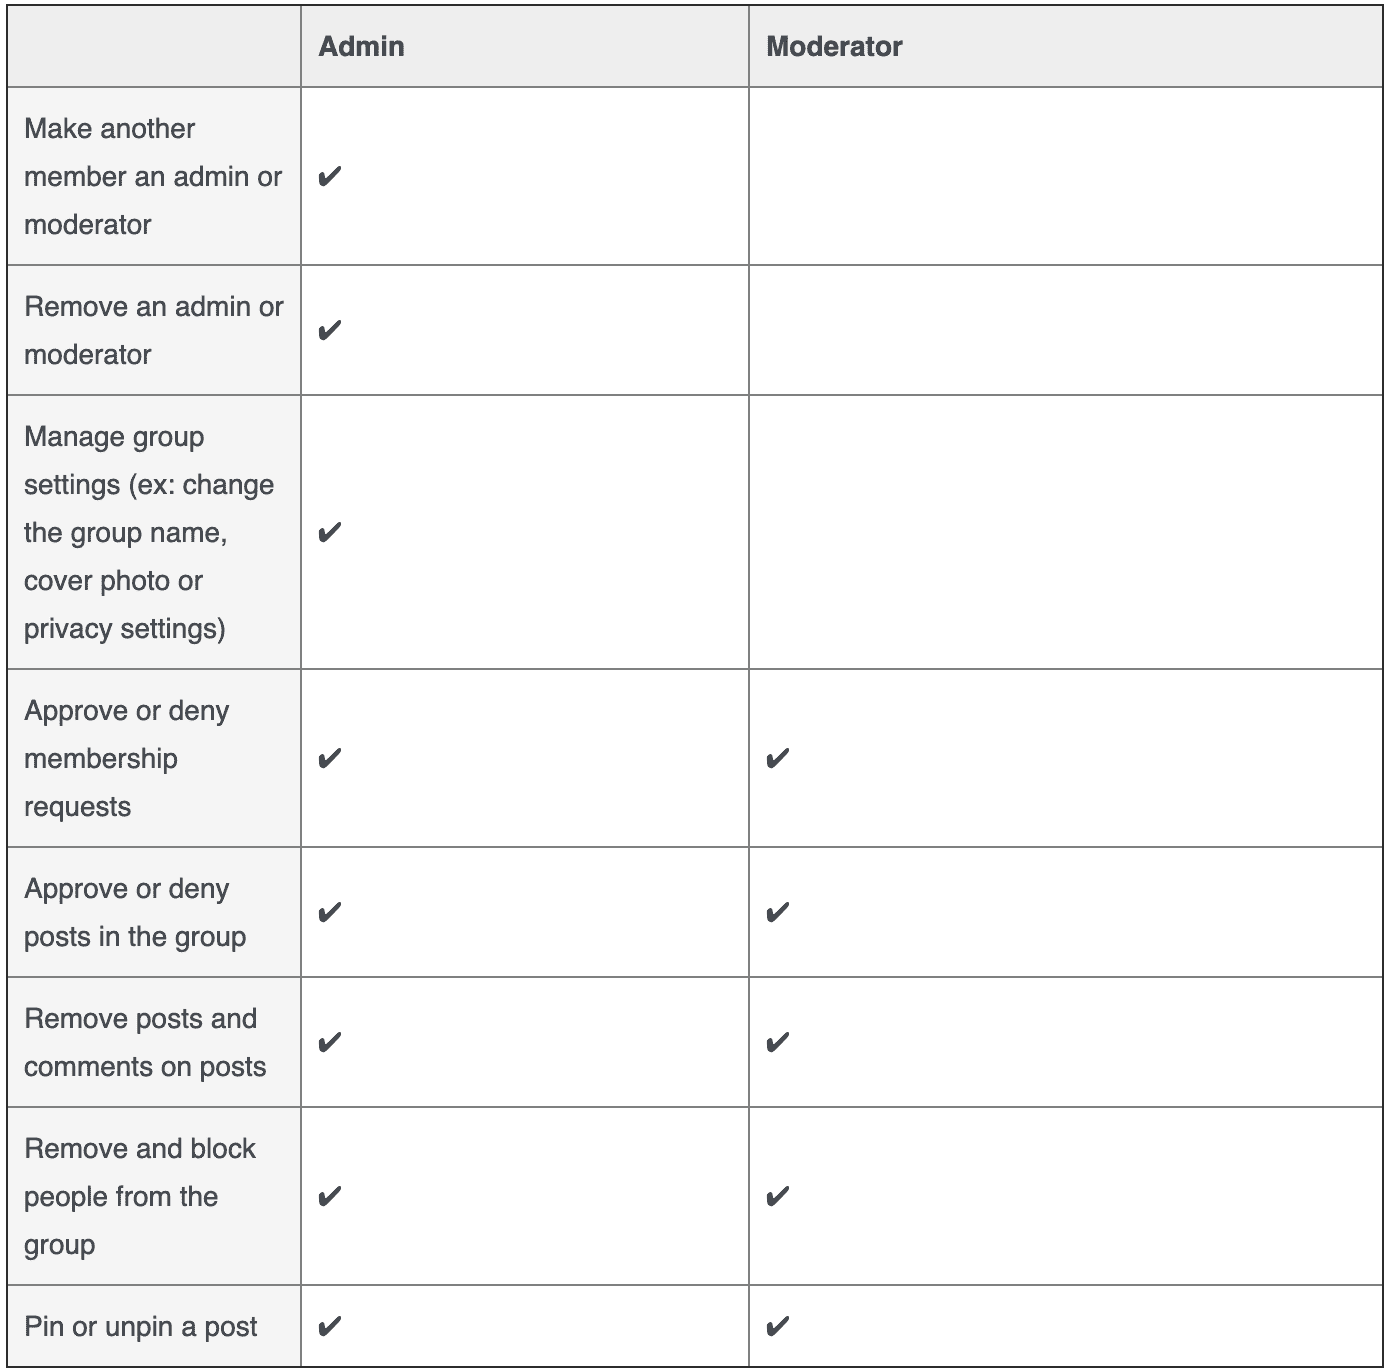 The differences between a Facebook admin and a Facebook Moderator are described in a chart. The main differences are that an admin can remove another admin, change the group settings, and make someone else an admin.